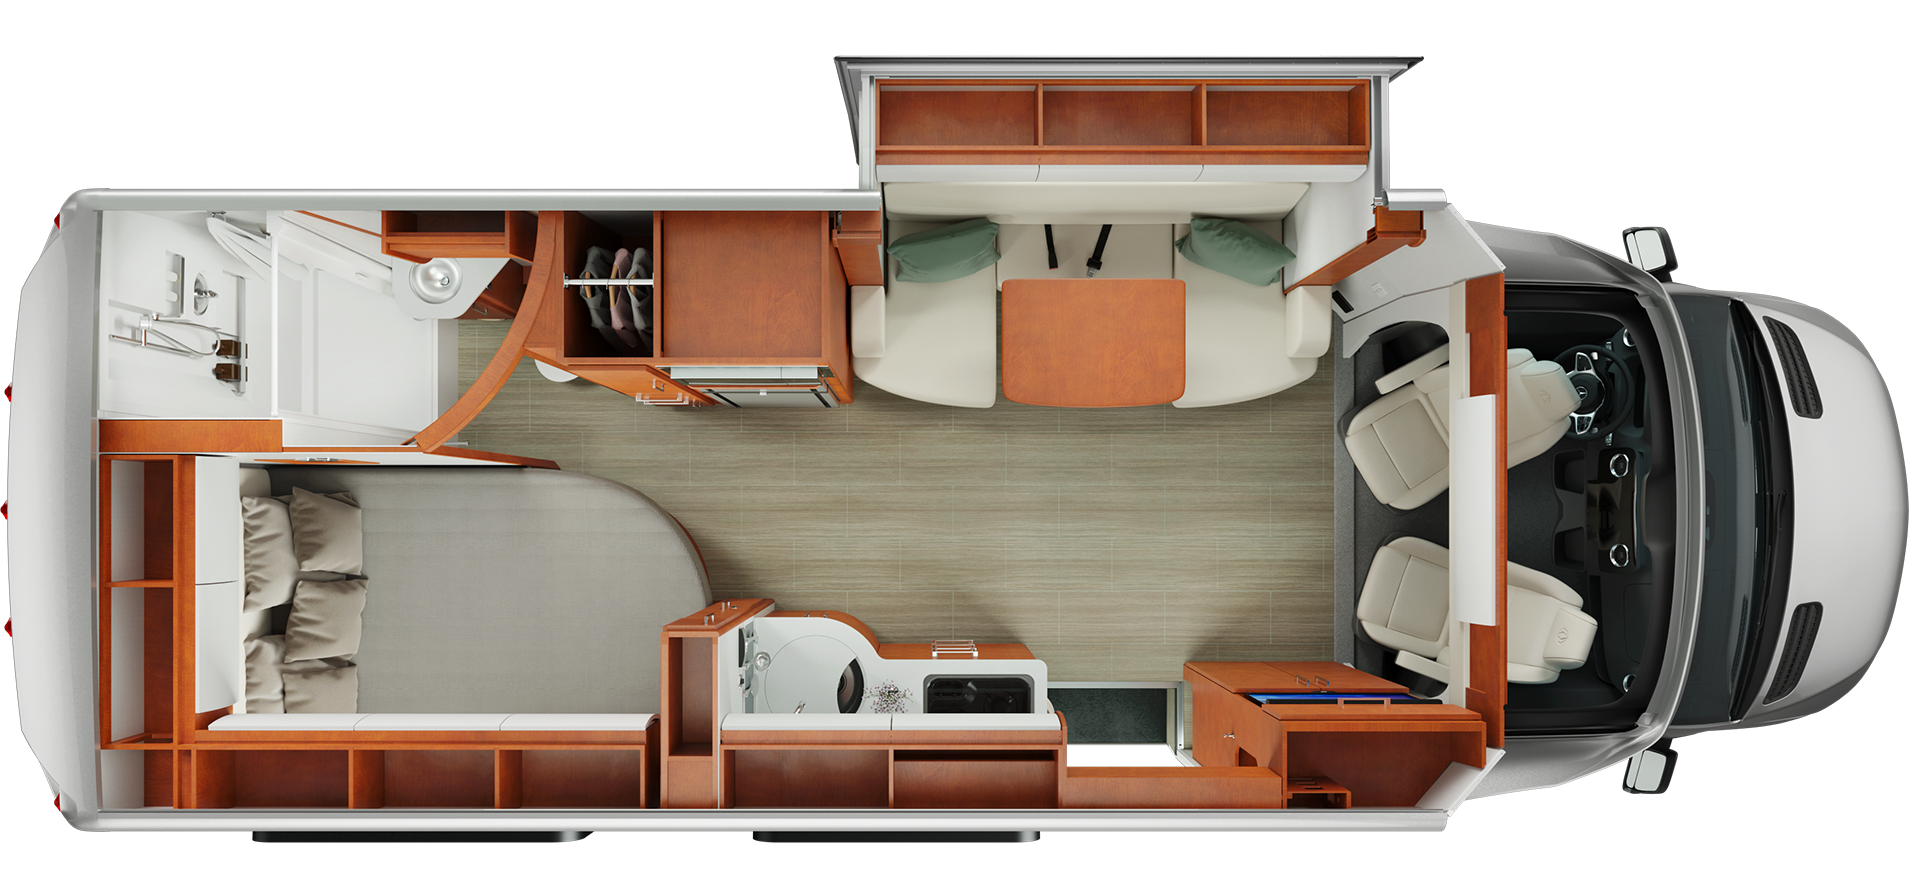 Mercedes Sprinter Floor Plan: Mercedes Sprinter Motorhome Floor Plan